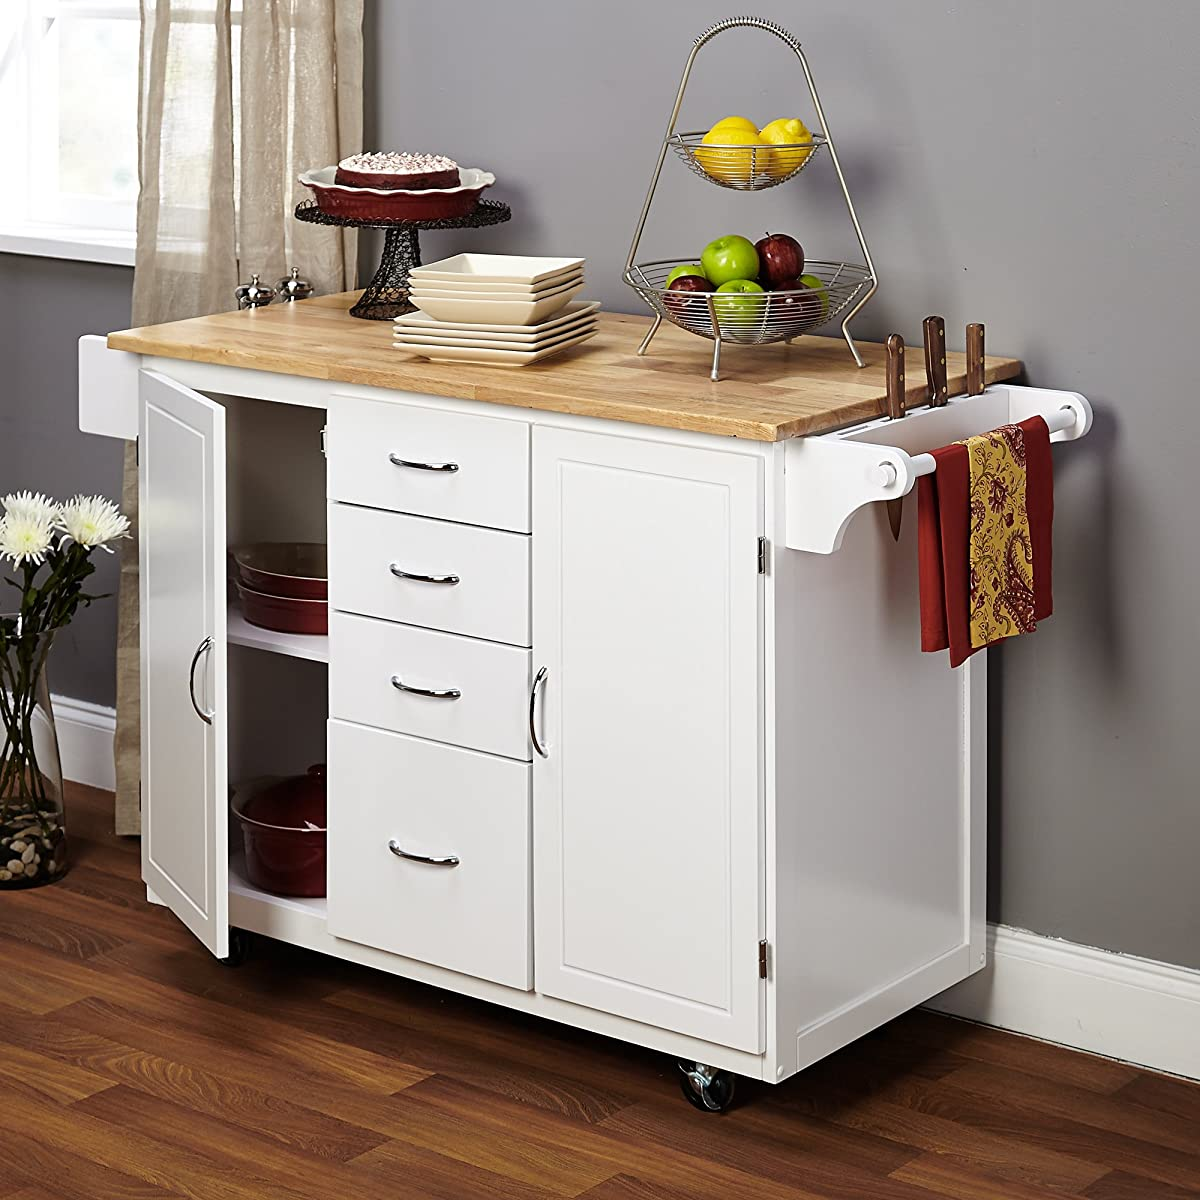 Target Marketing Systems Two-Toned Country Cottage Rolling Kitchen Cart with 4 Drawers, 2 Cabinets, 1 Towel Rack, 1 Spice Rack, and an Adjustable Shelf, White/Natural